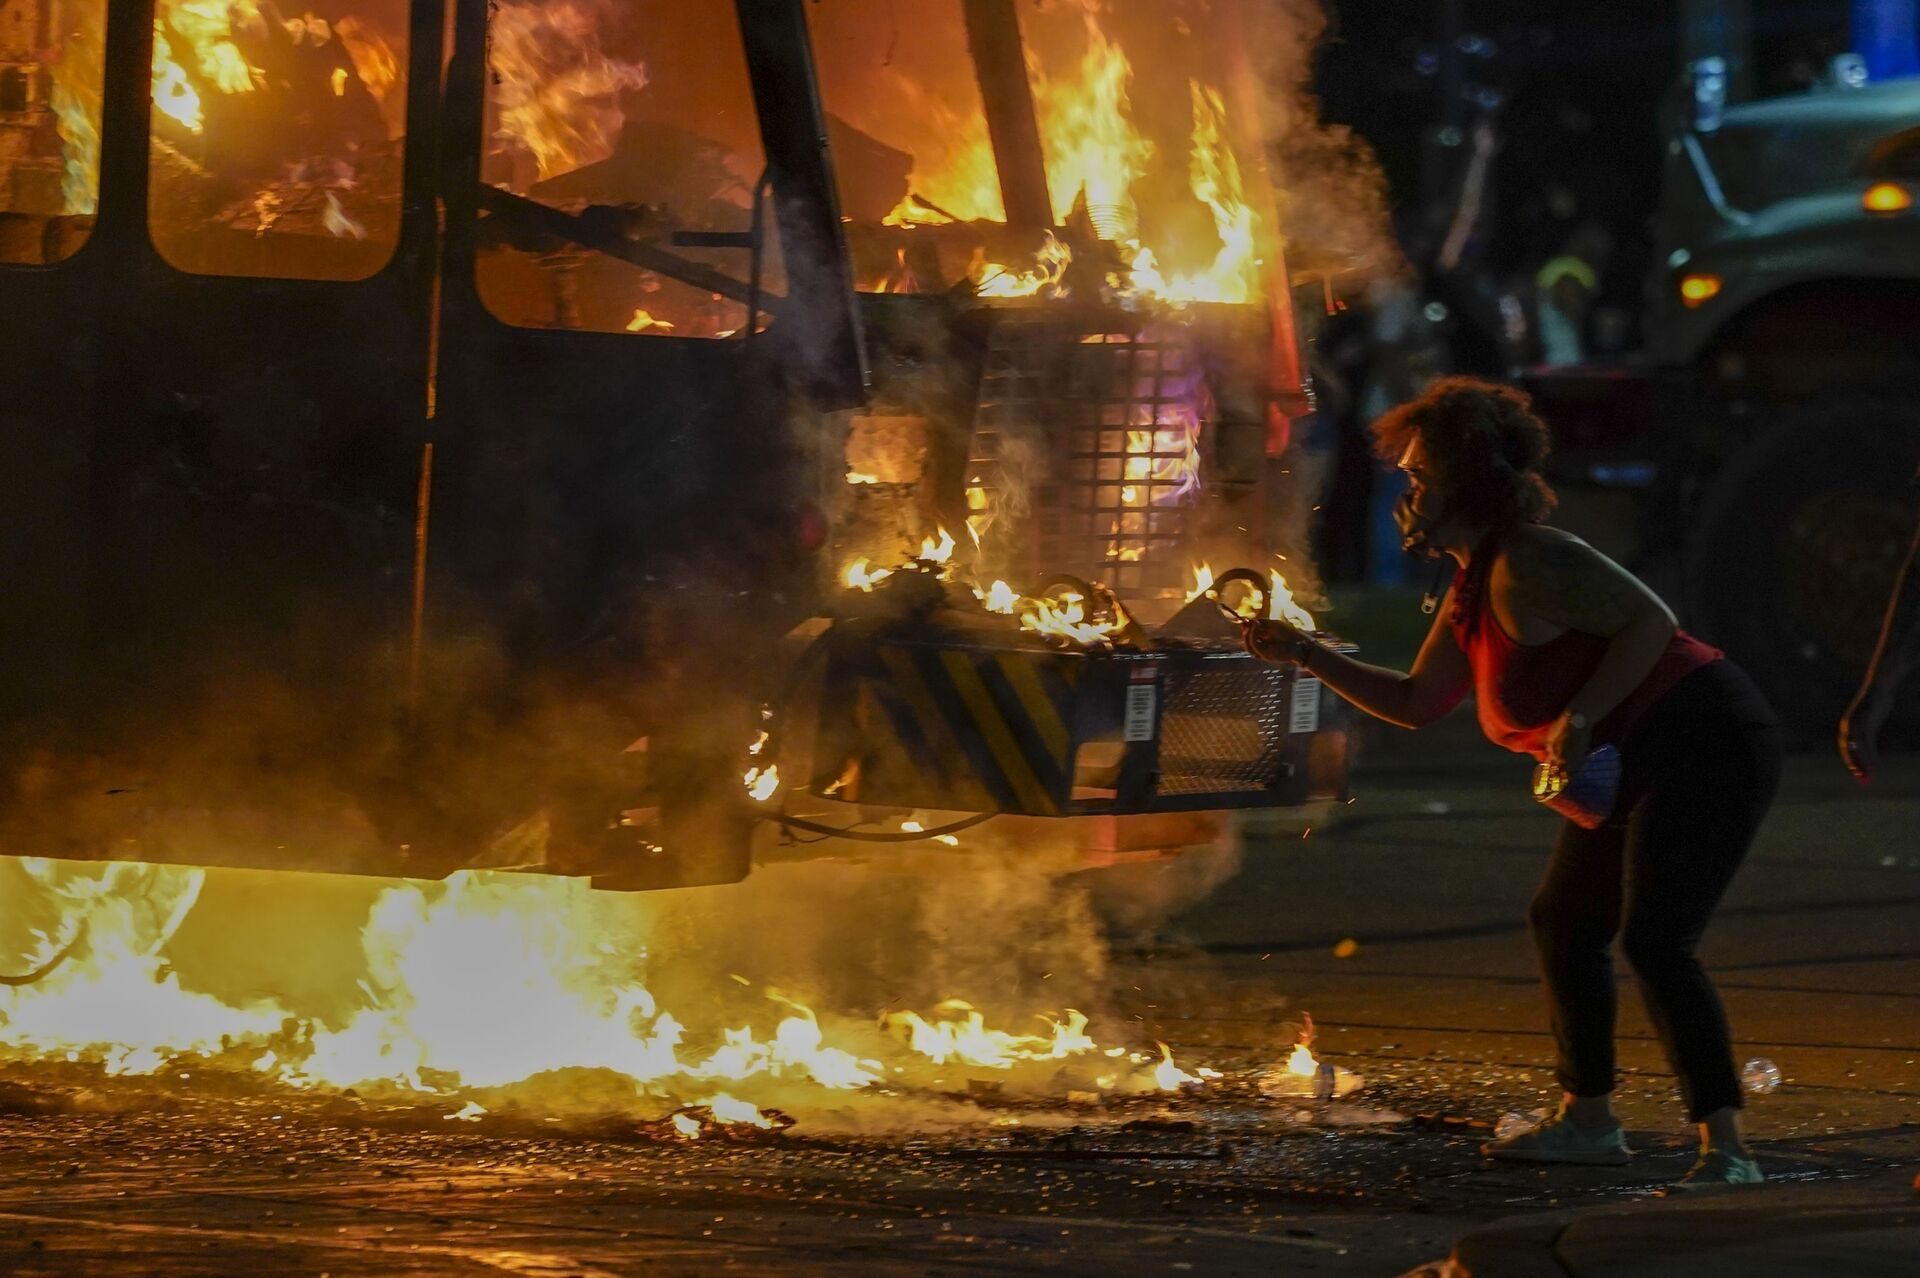 A protester lights a cigarette on a garbage truck that was set on fire during protests late Monday, Aug. 24, 2020, in Kenosha, Wis., sparked by the shooting of Jacob Blake by a Kenosha Police officer a day earlier.  - Sputnik International, 1920, 07.09.2021